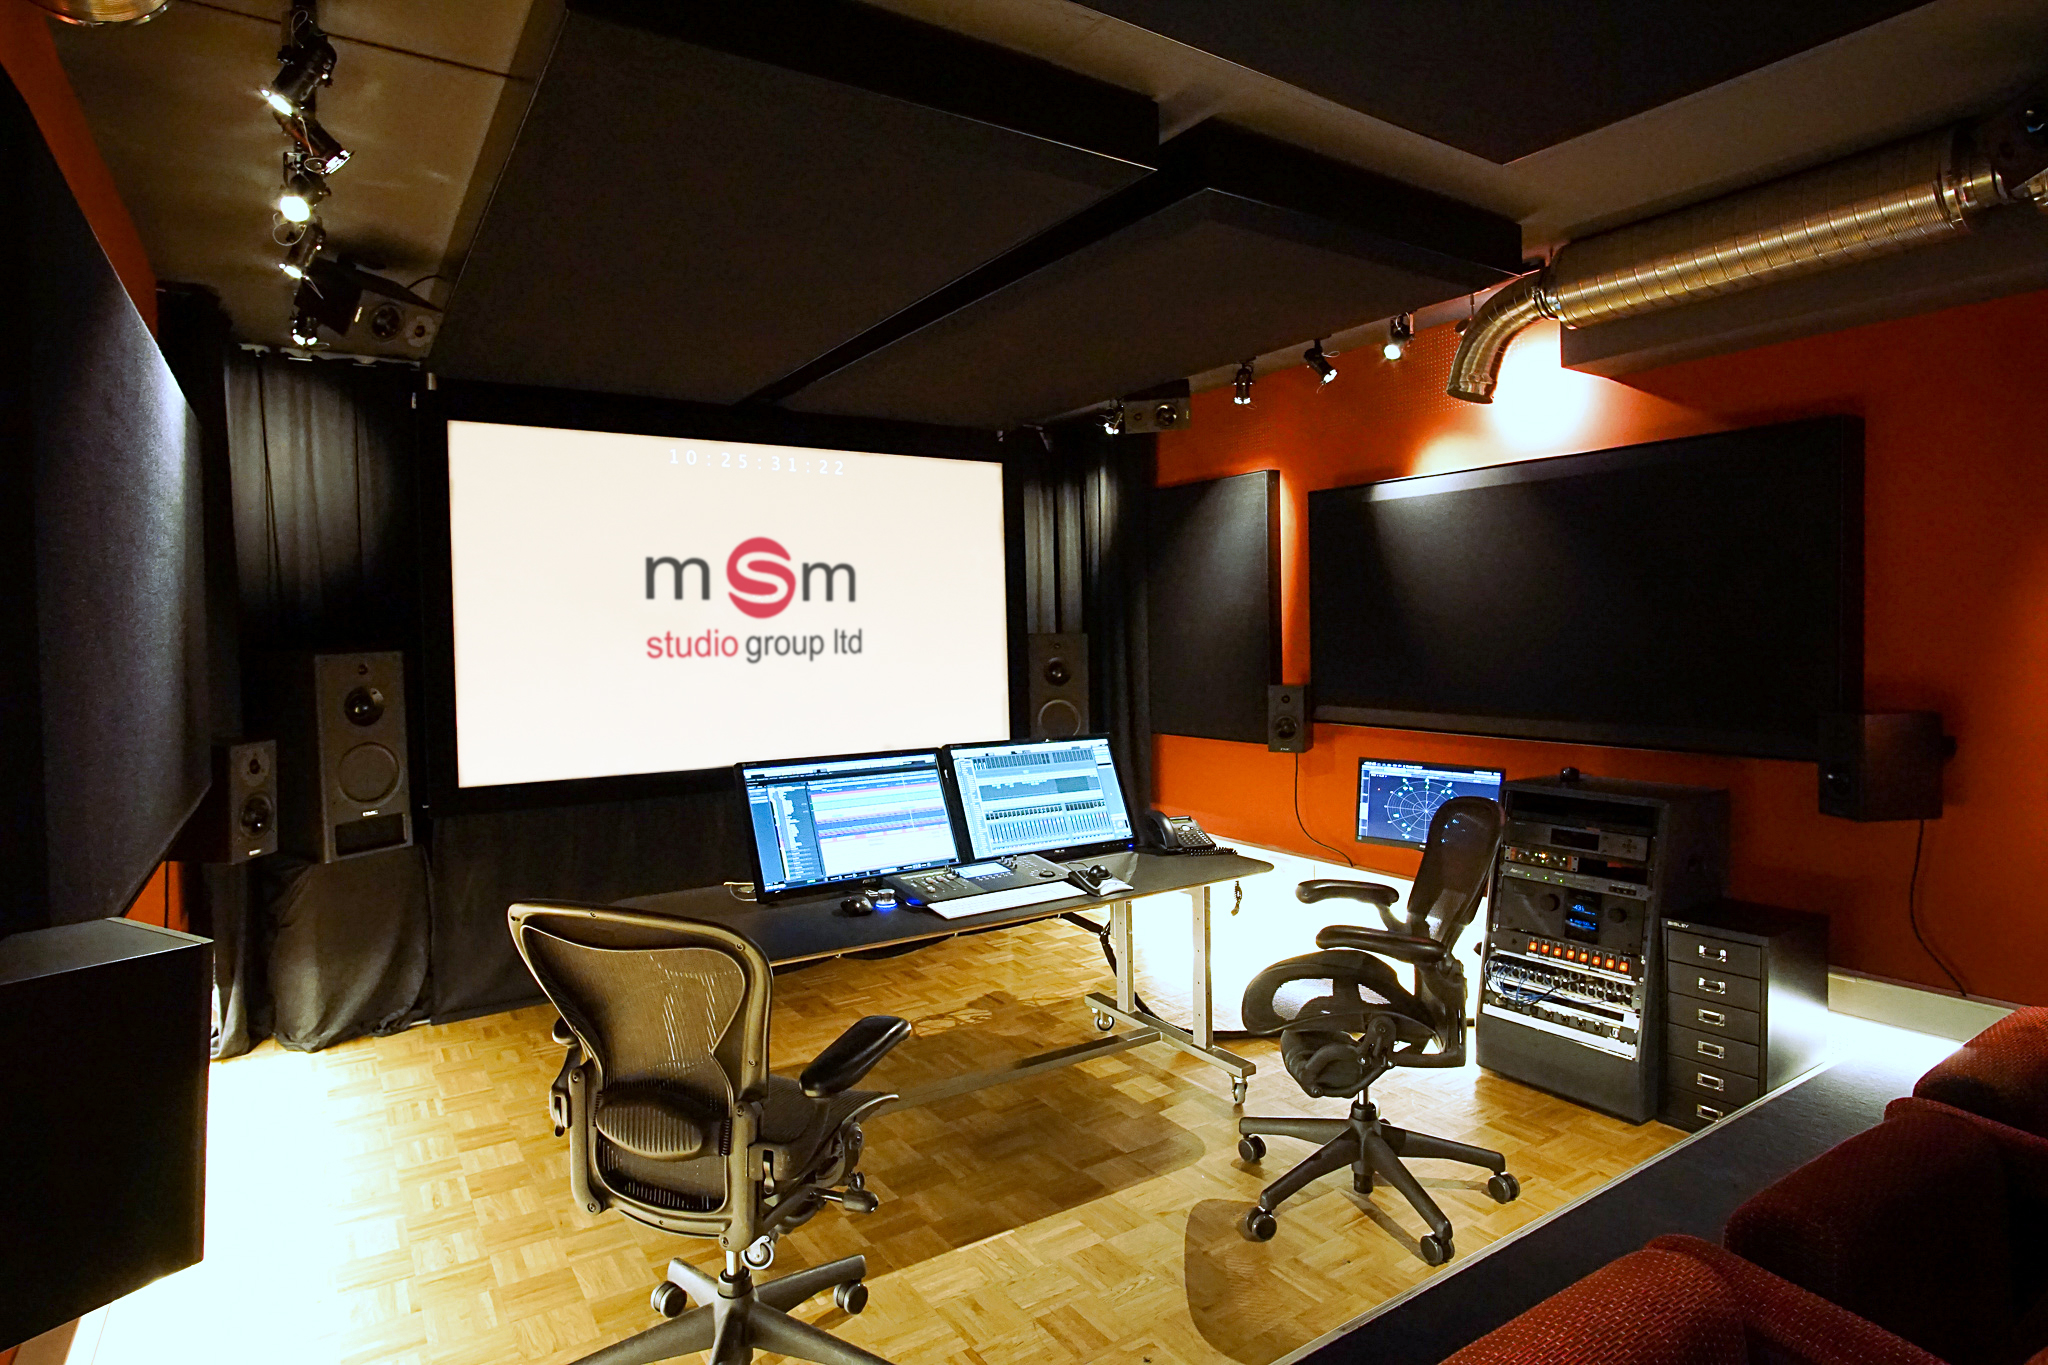 msm studio group Atmos-rf.jpg